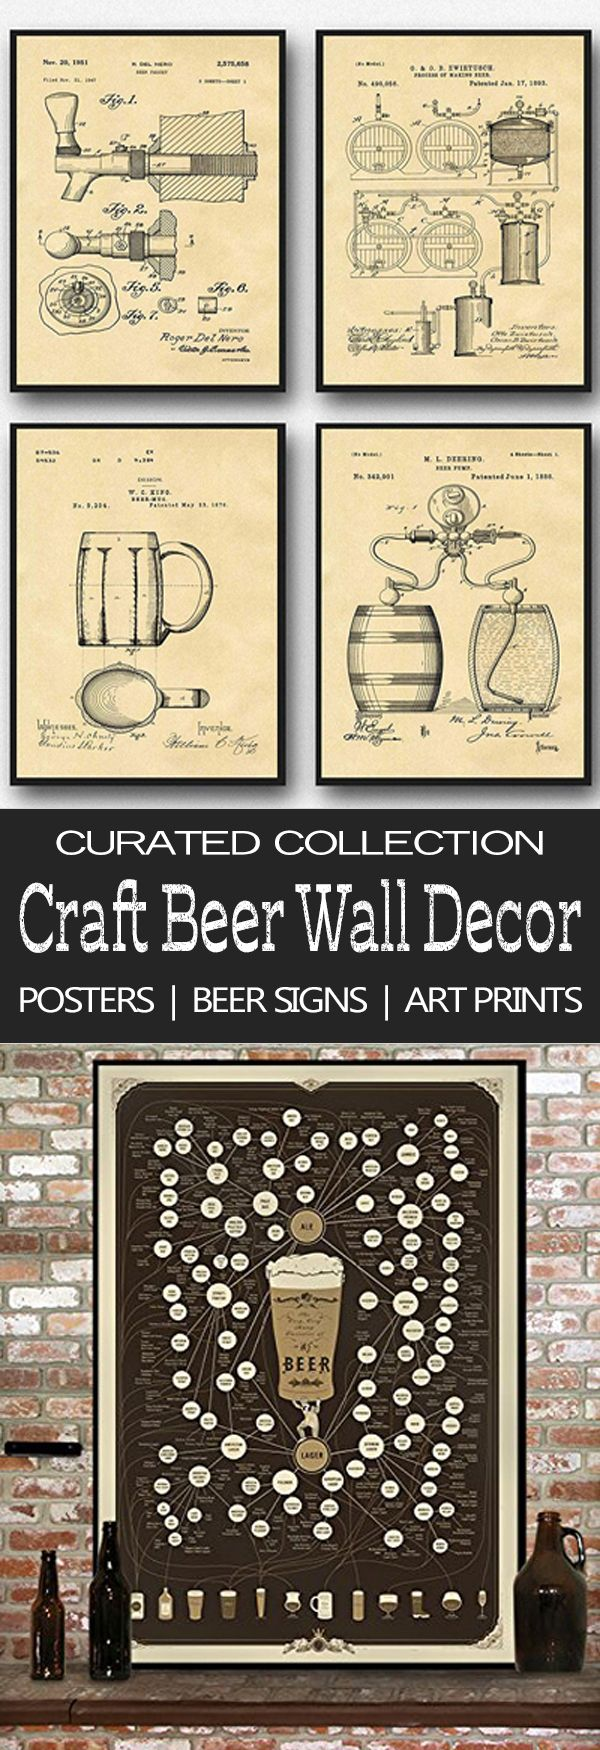 Beer art prints and beer posters collection Craft beer themed wall decor makes the perfect gift for beer lovers